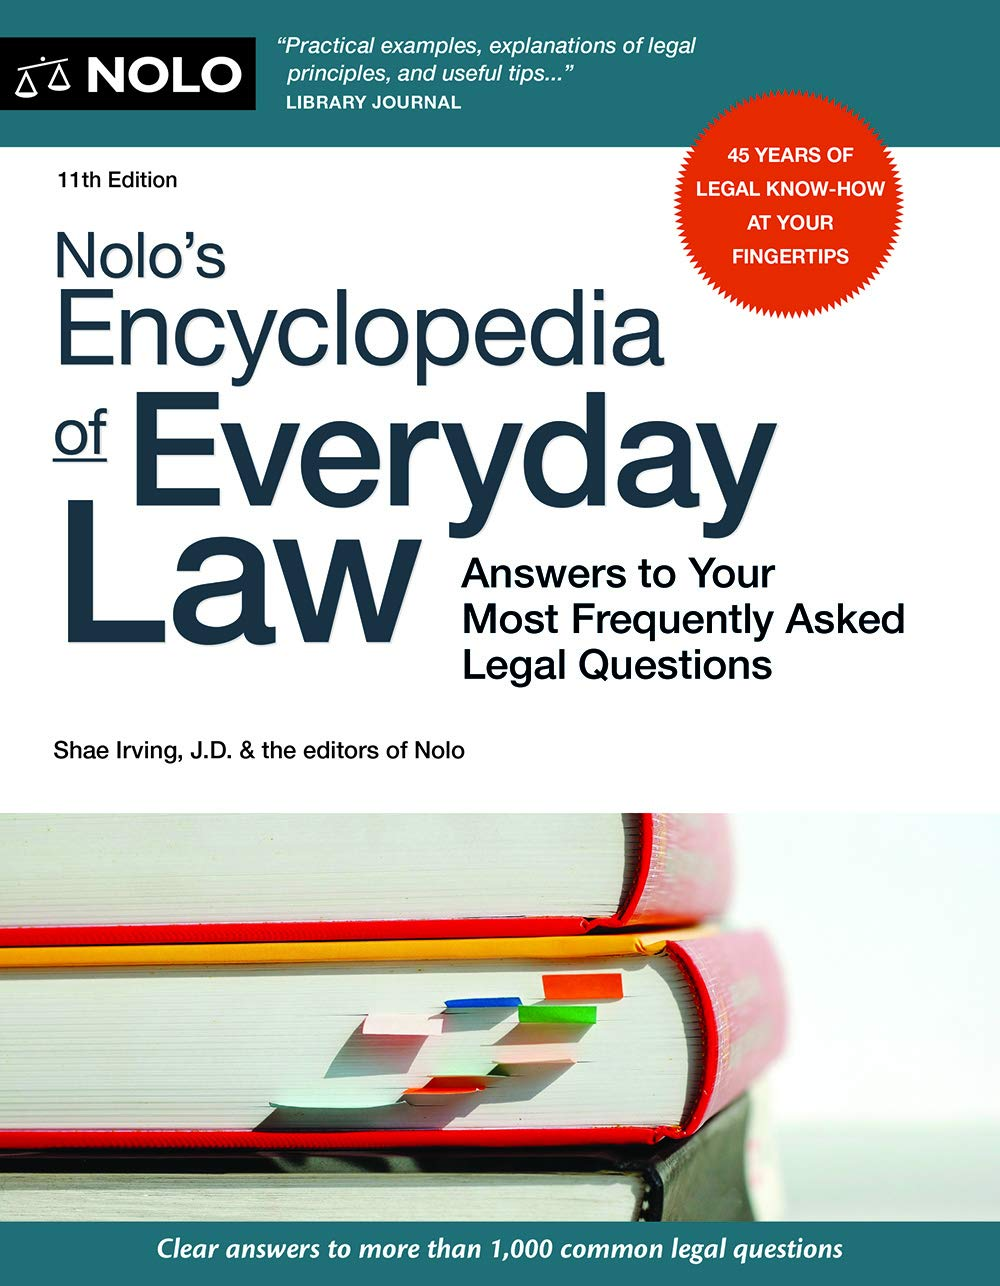 Nolo's Encyclopedia of Everyday Law: Answers to Your Most Frequently Asked Legal Questions by NOLO